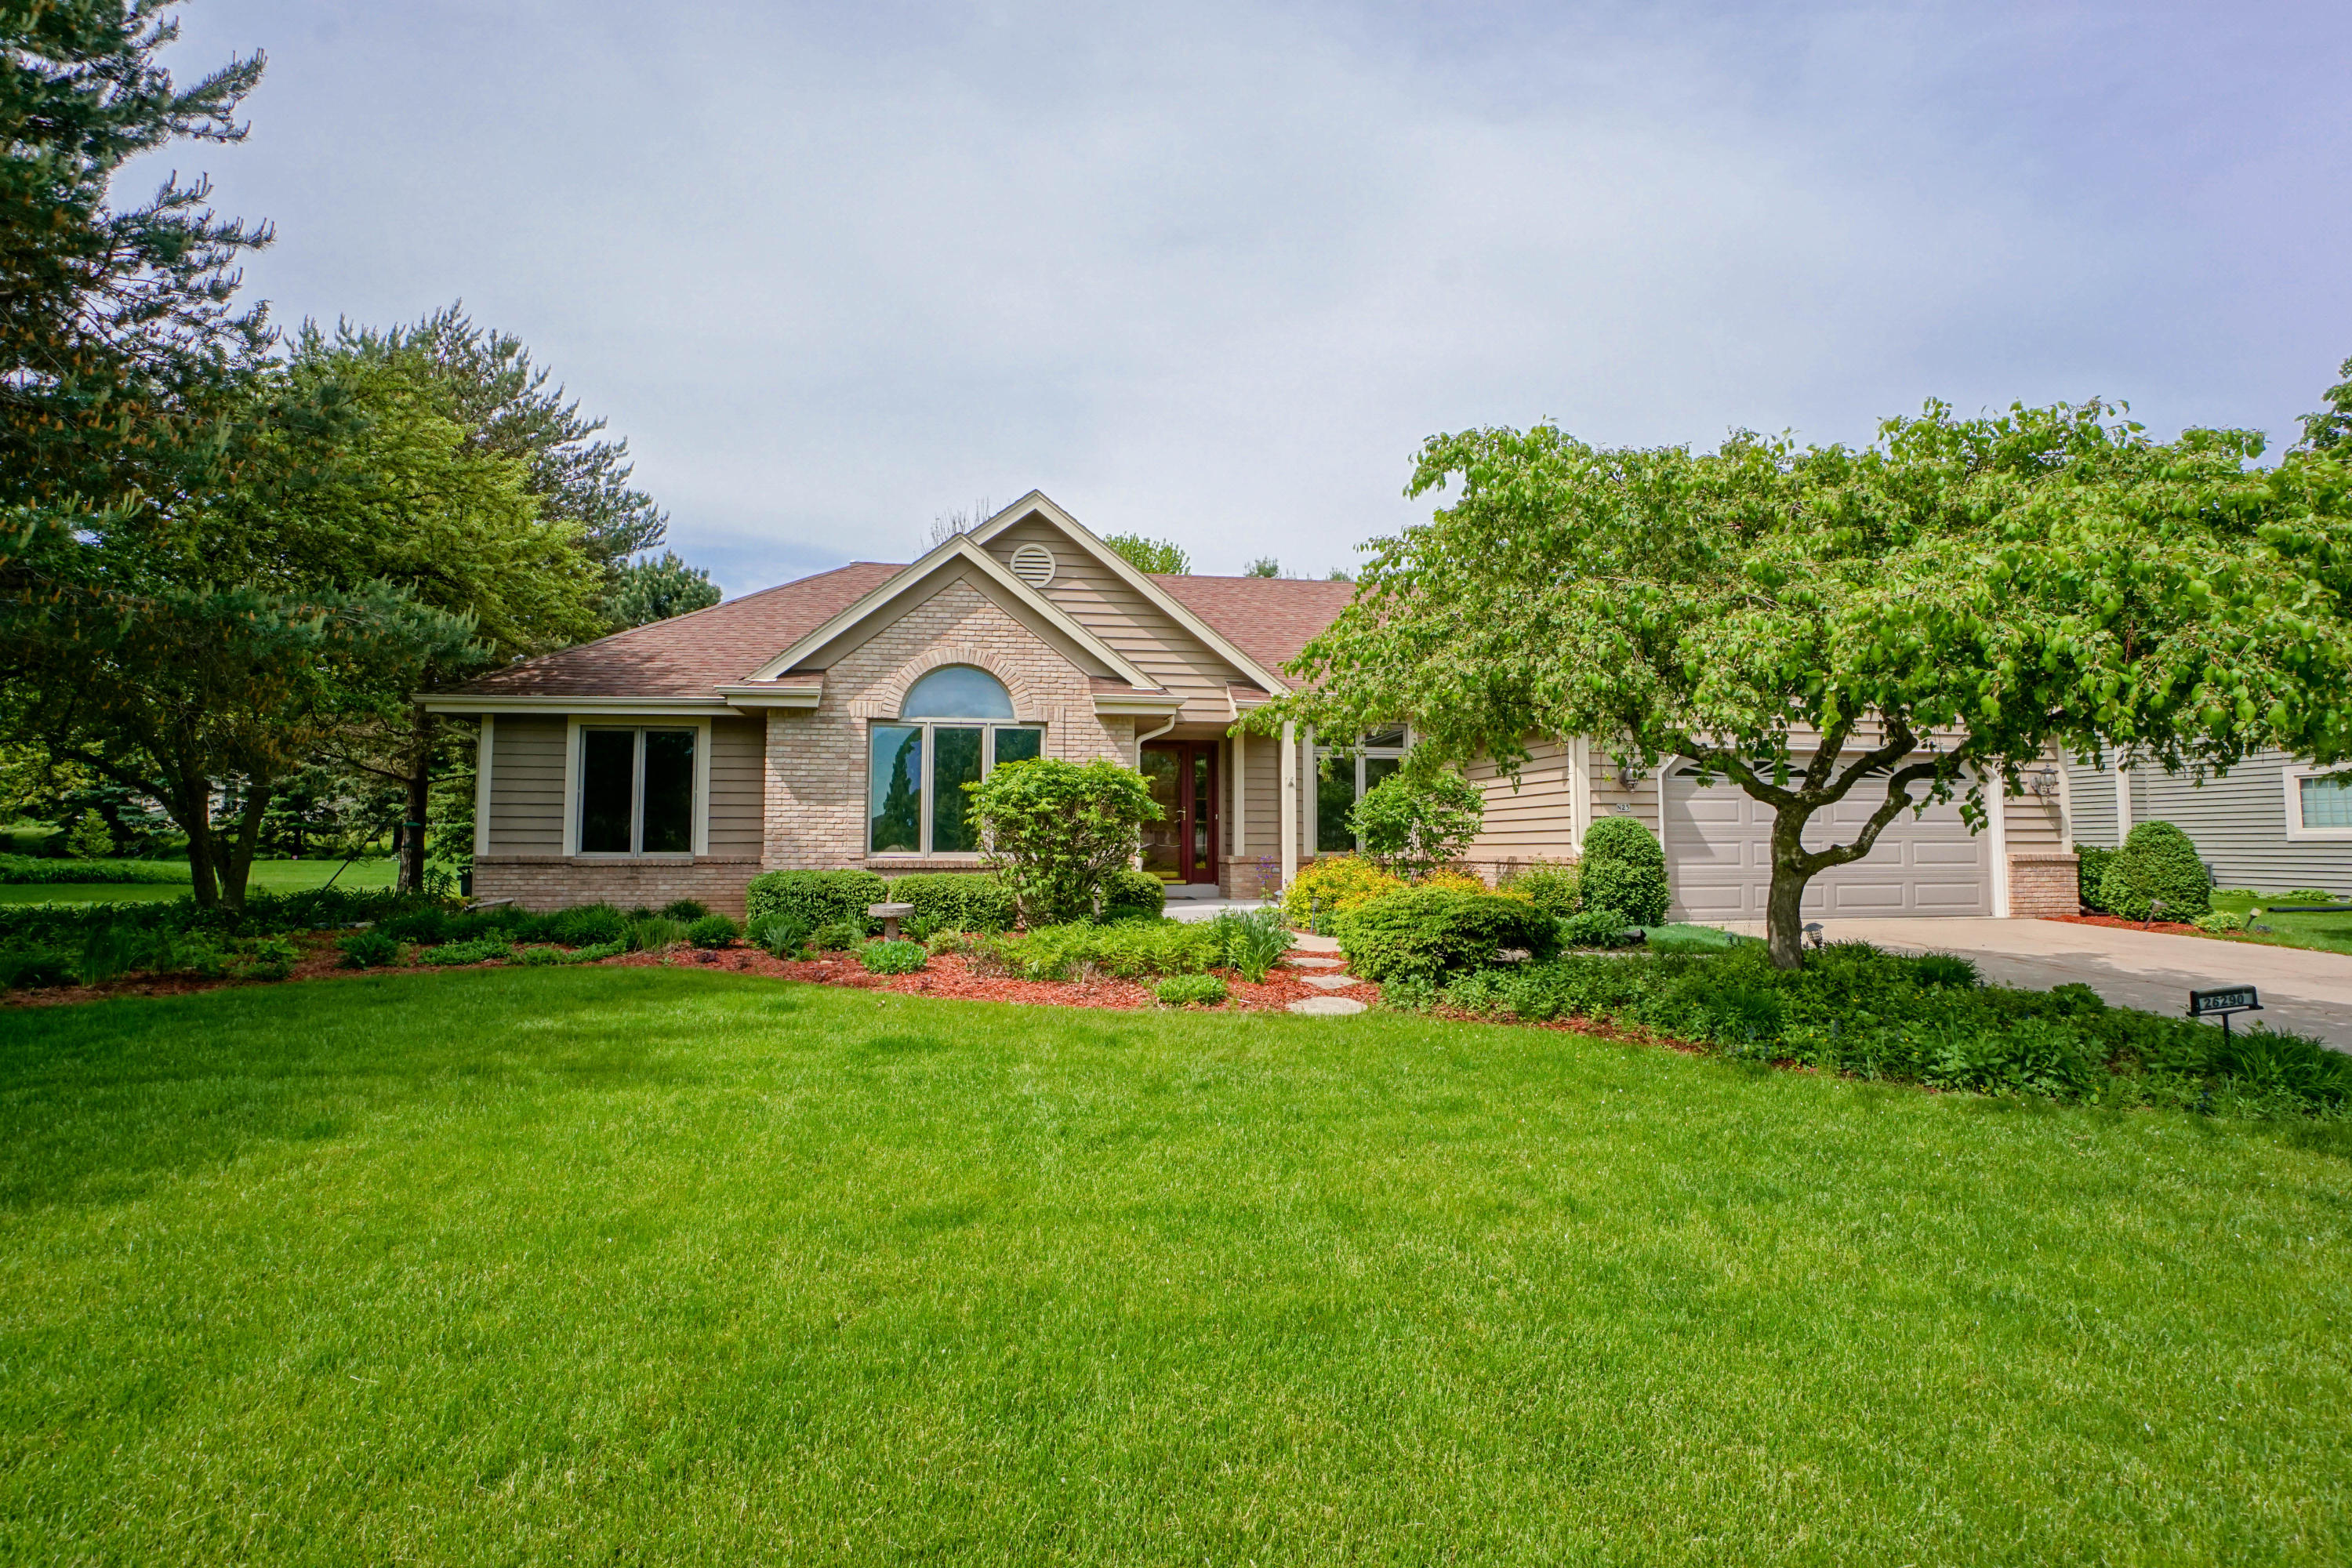 N25W26290 Foxcroft Dr, Pewaukee, Wisconsin 53072, 3 Bedrooms Bedrooms, 7 Rooms Rooms,2 BathroomsBathrooms,Single-Family,For Sale,Foxcroft Dr,1639822